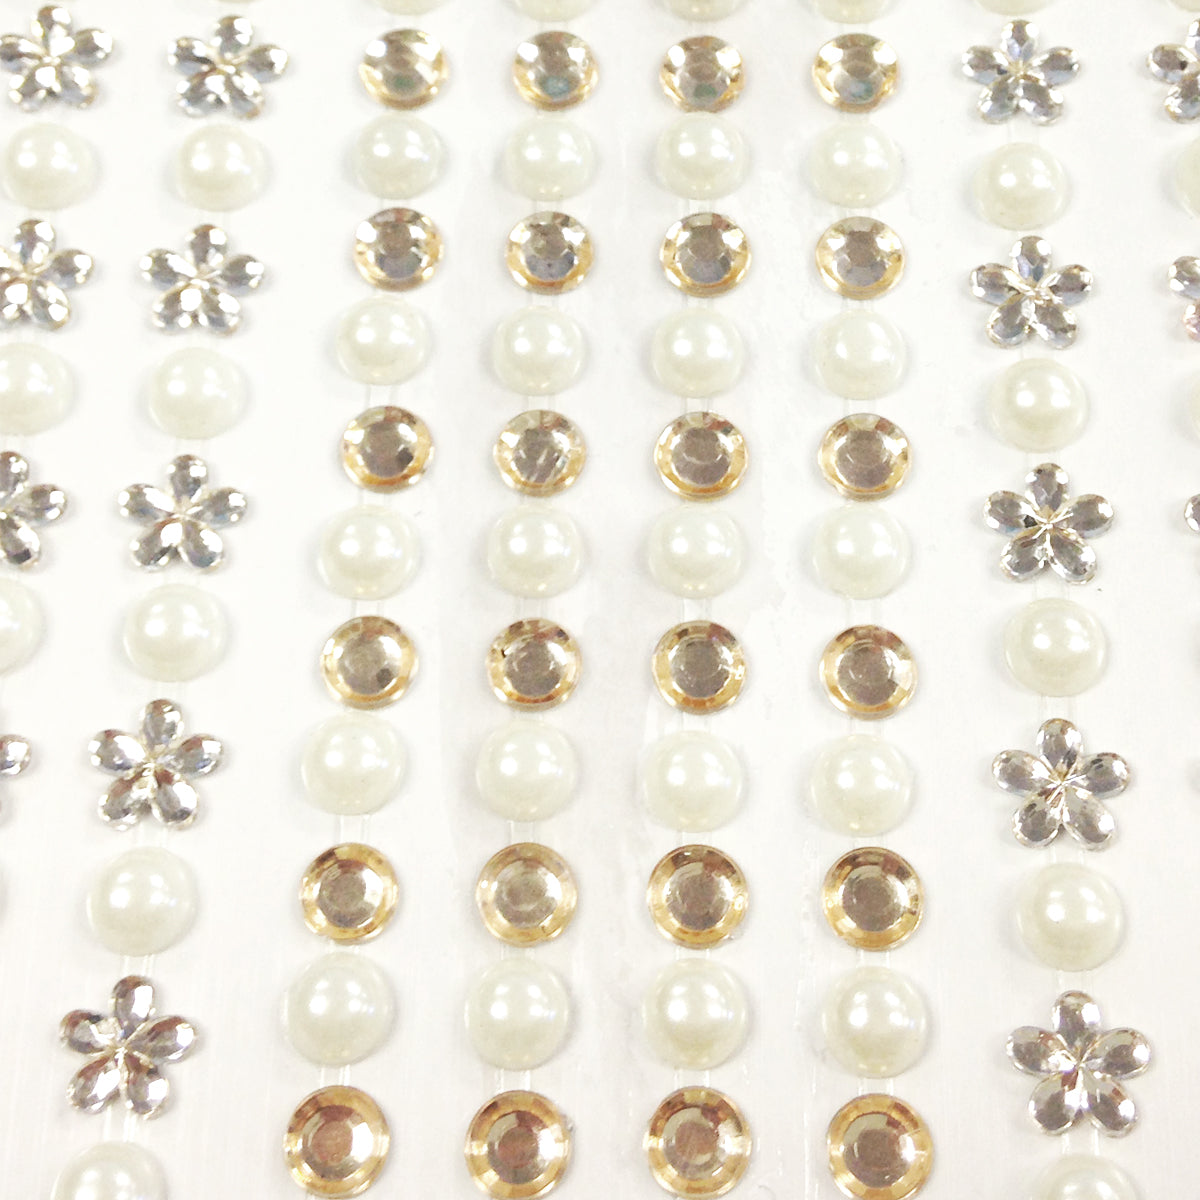 Wrapables 164 pieces Crystal Flower and Pearl Stickers Adhesive Rhinestones